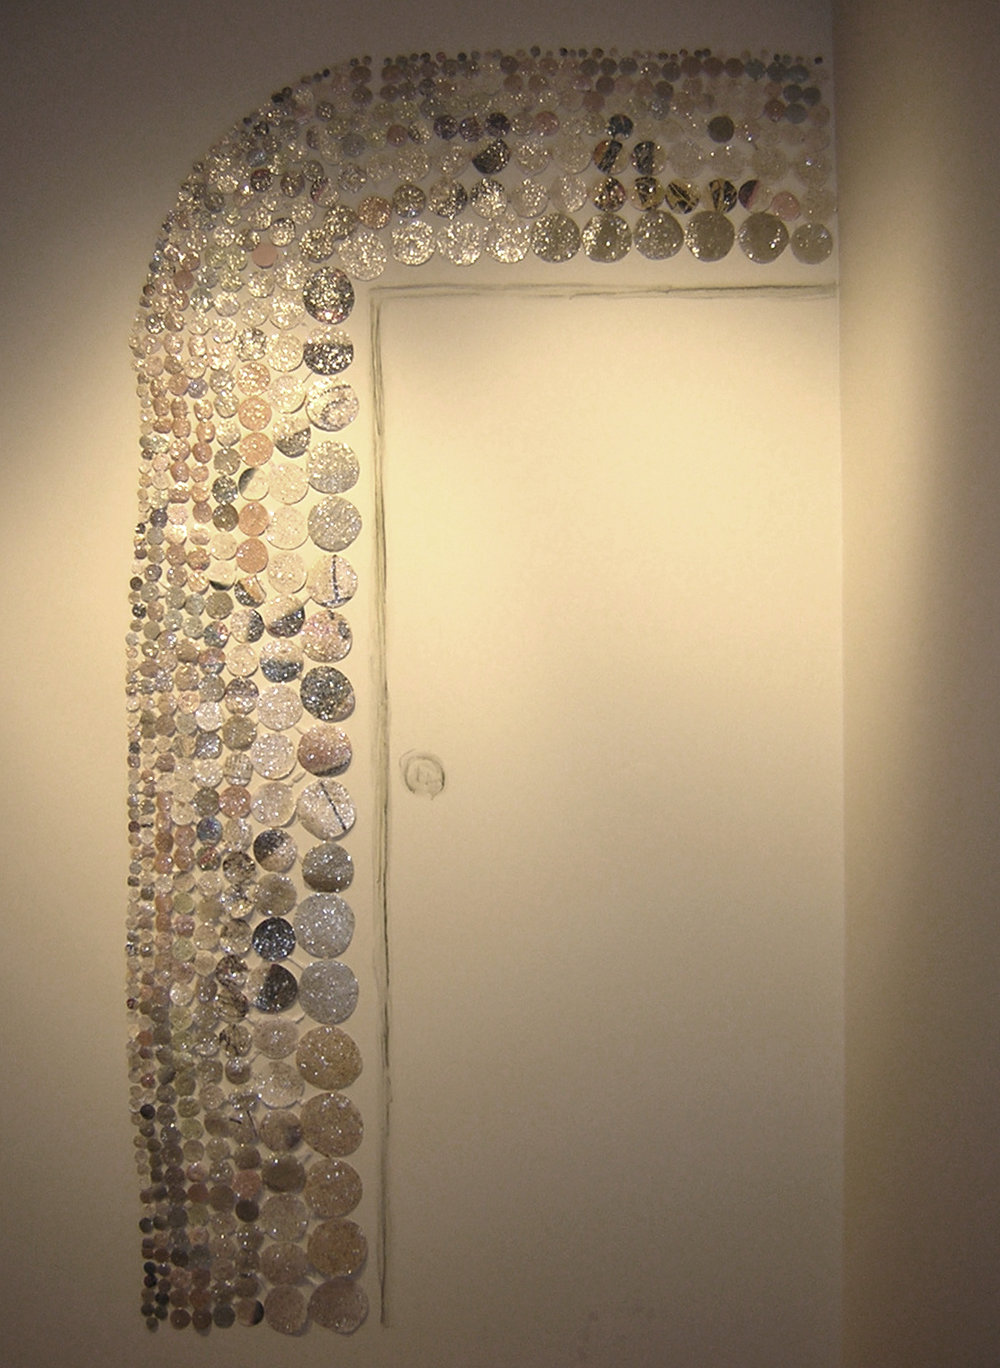 Curve   Installation, Oresman Gallery, Smith College Museum of Art  cut paper, mica, acrylic paint  2004